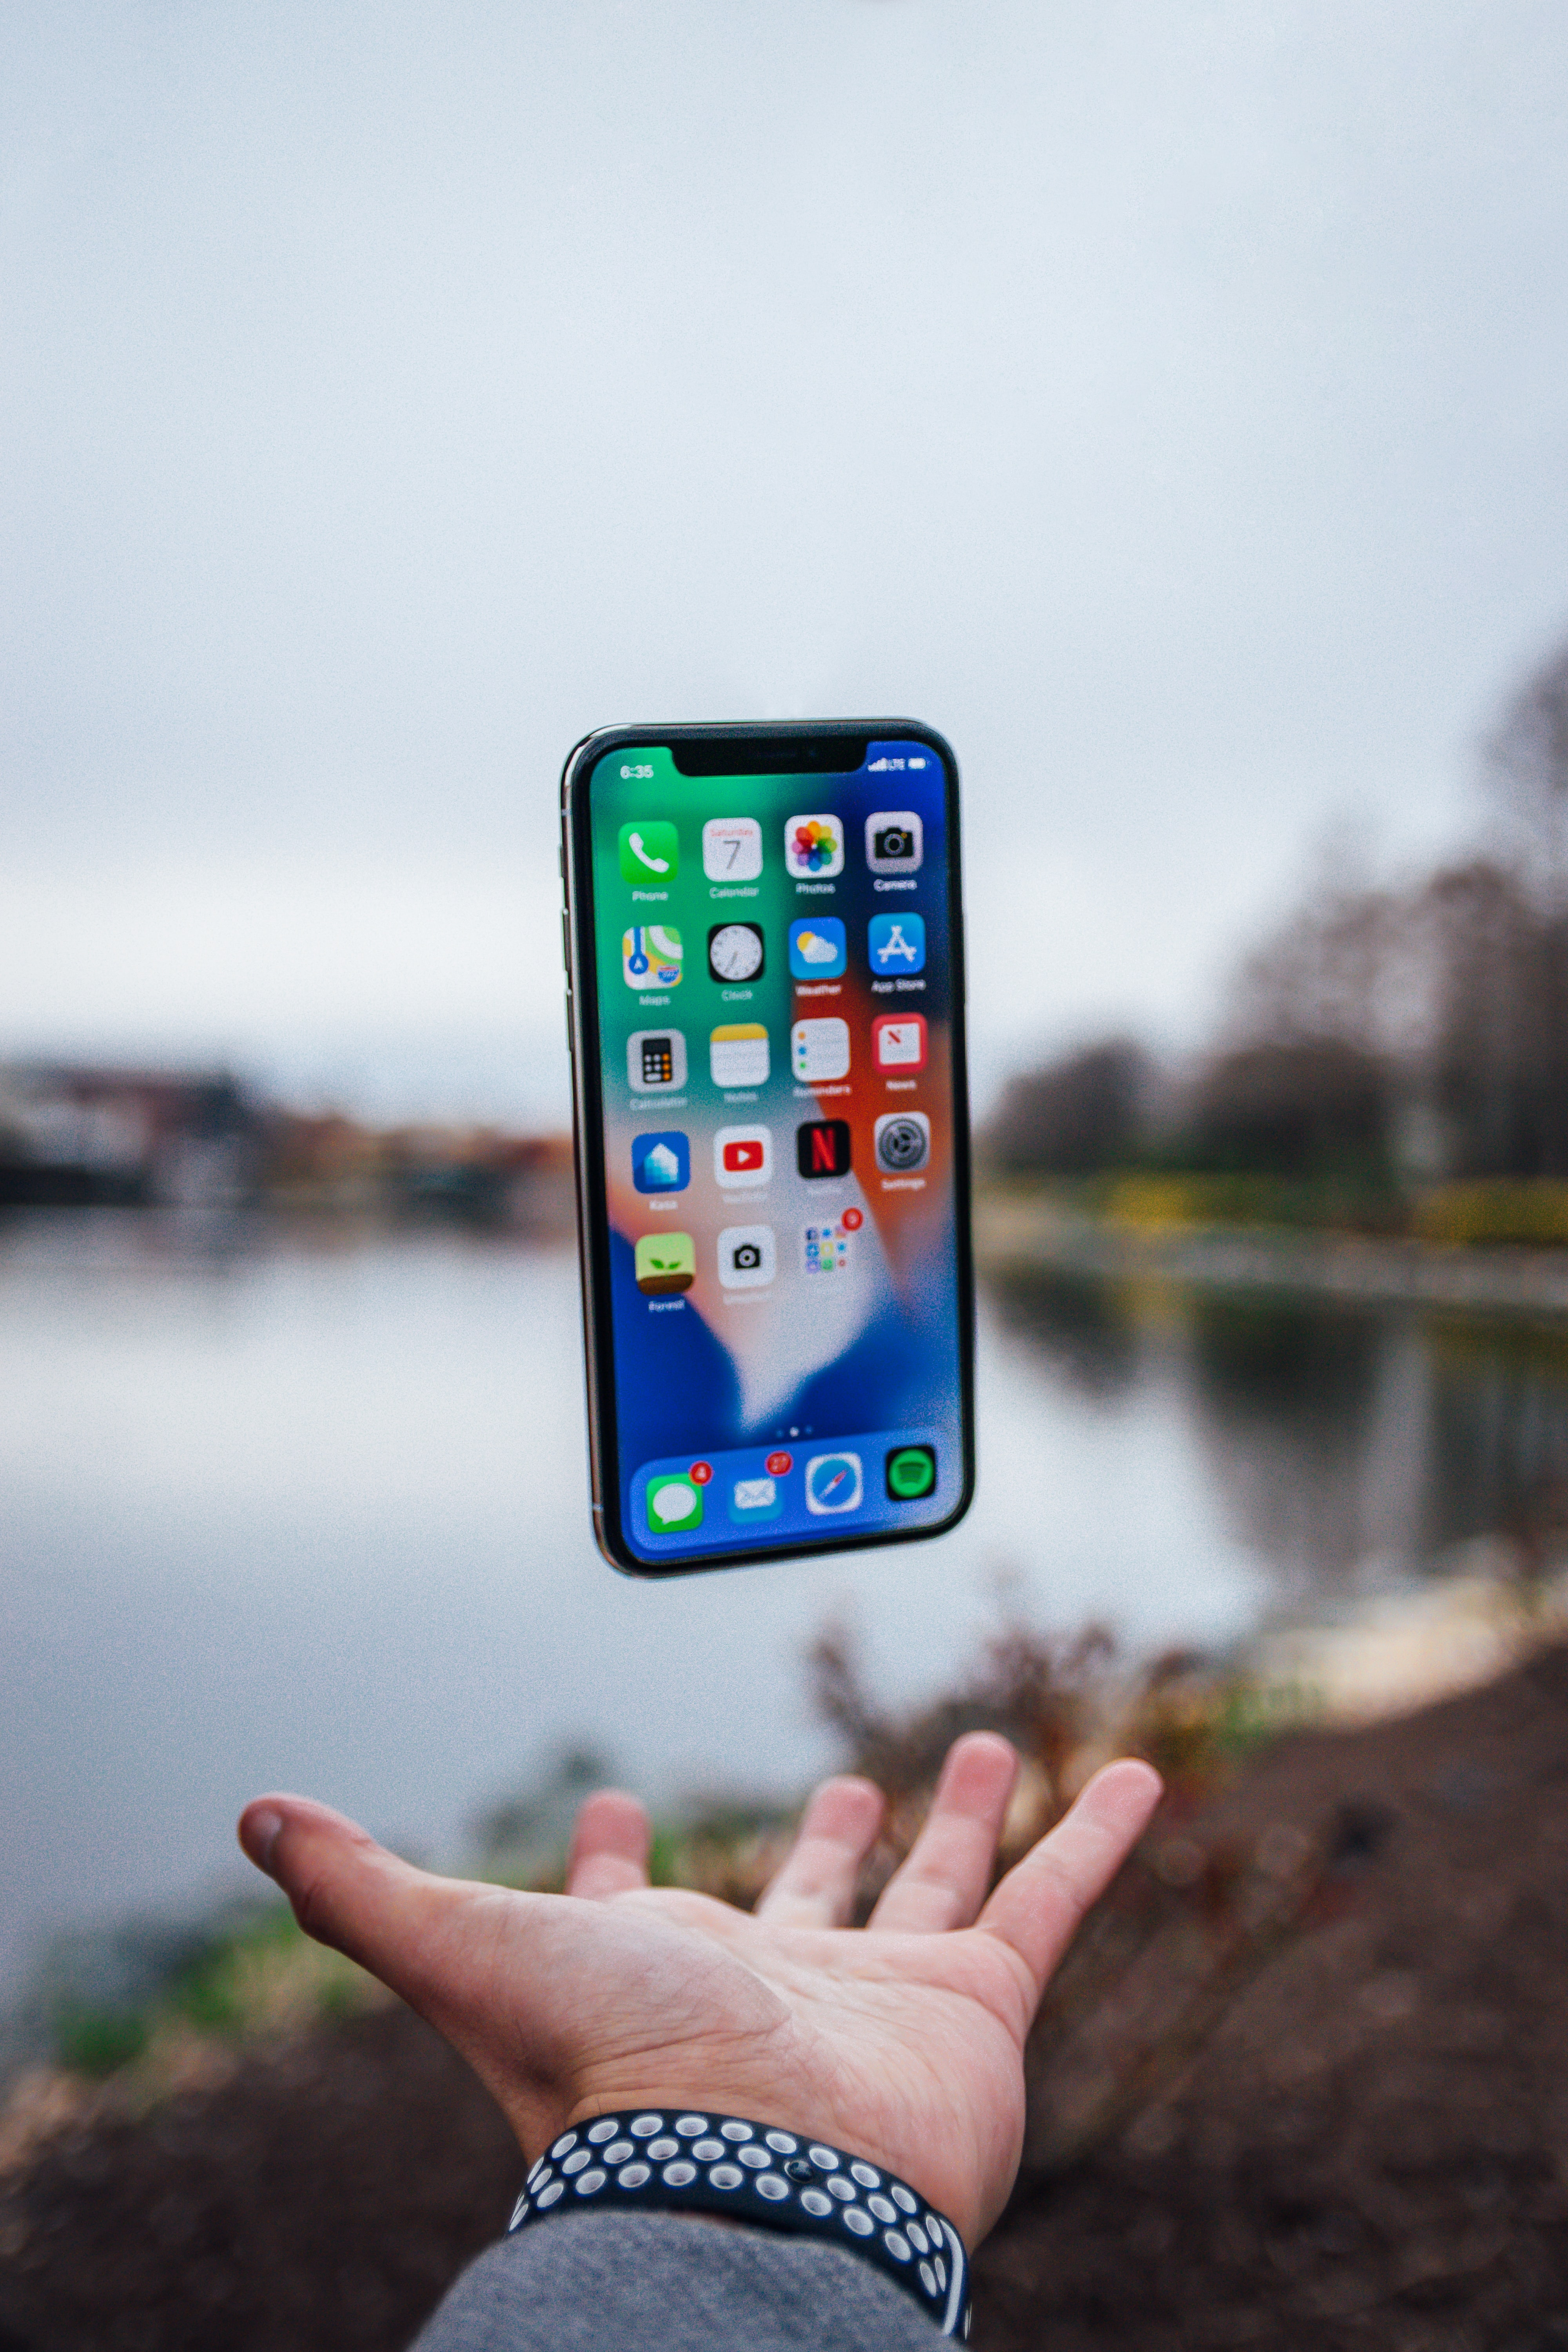 POV of iPhone floating above a person's hand